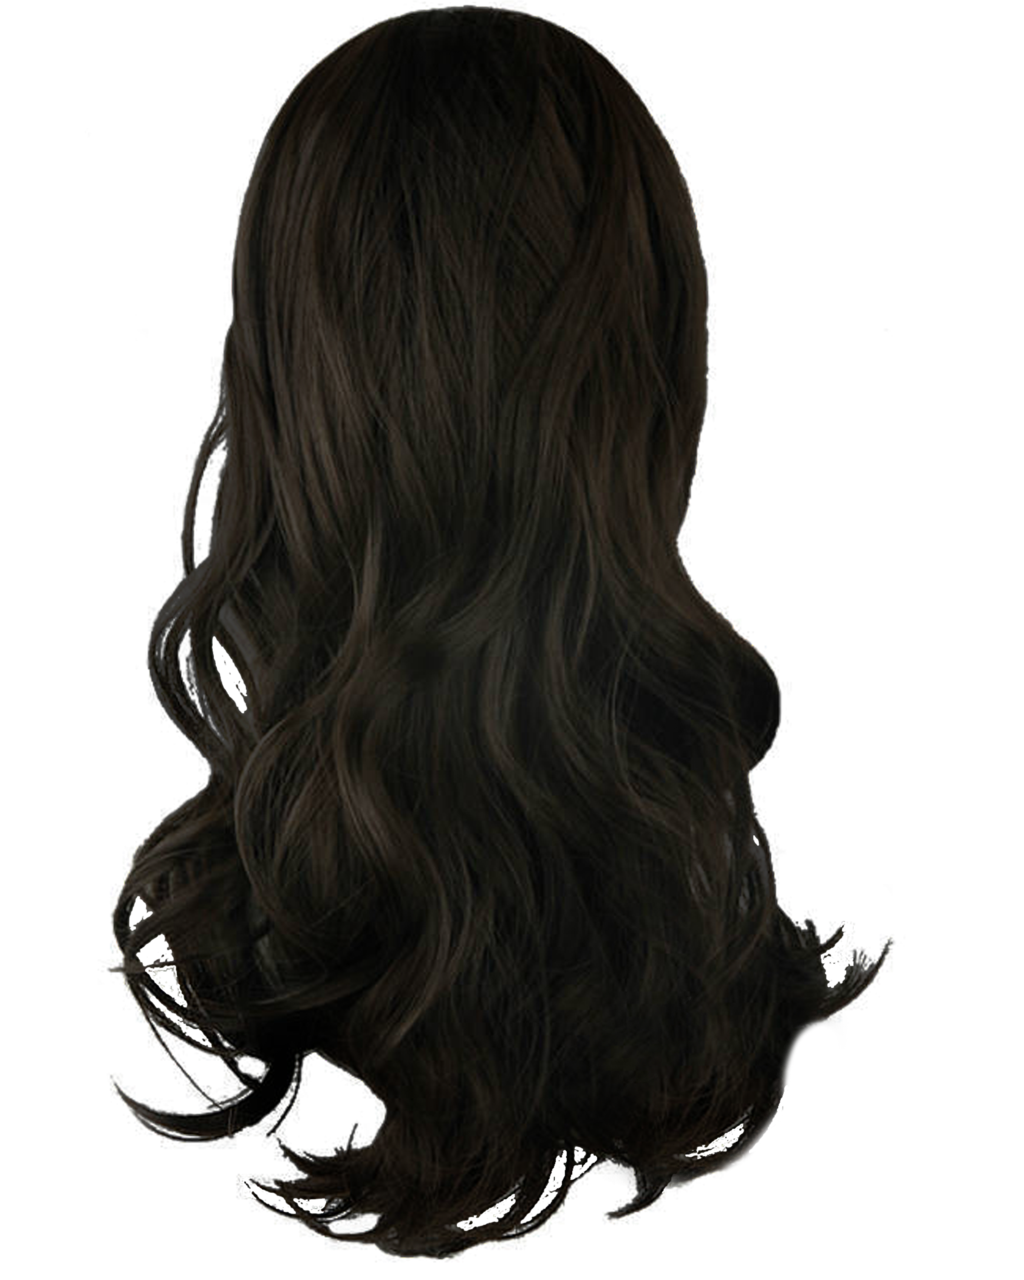 Long hair png. Women image purepng free